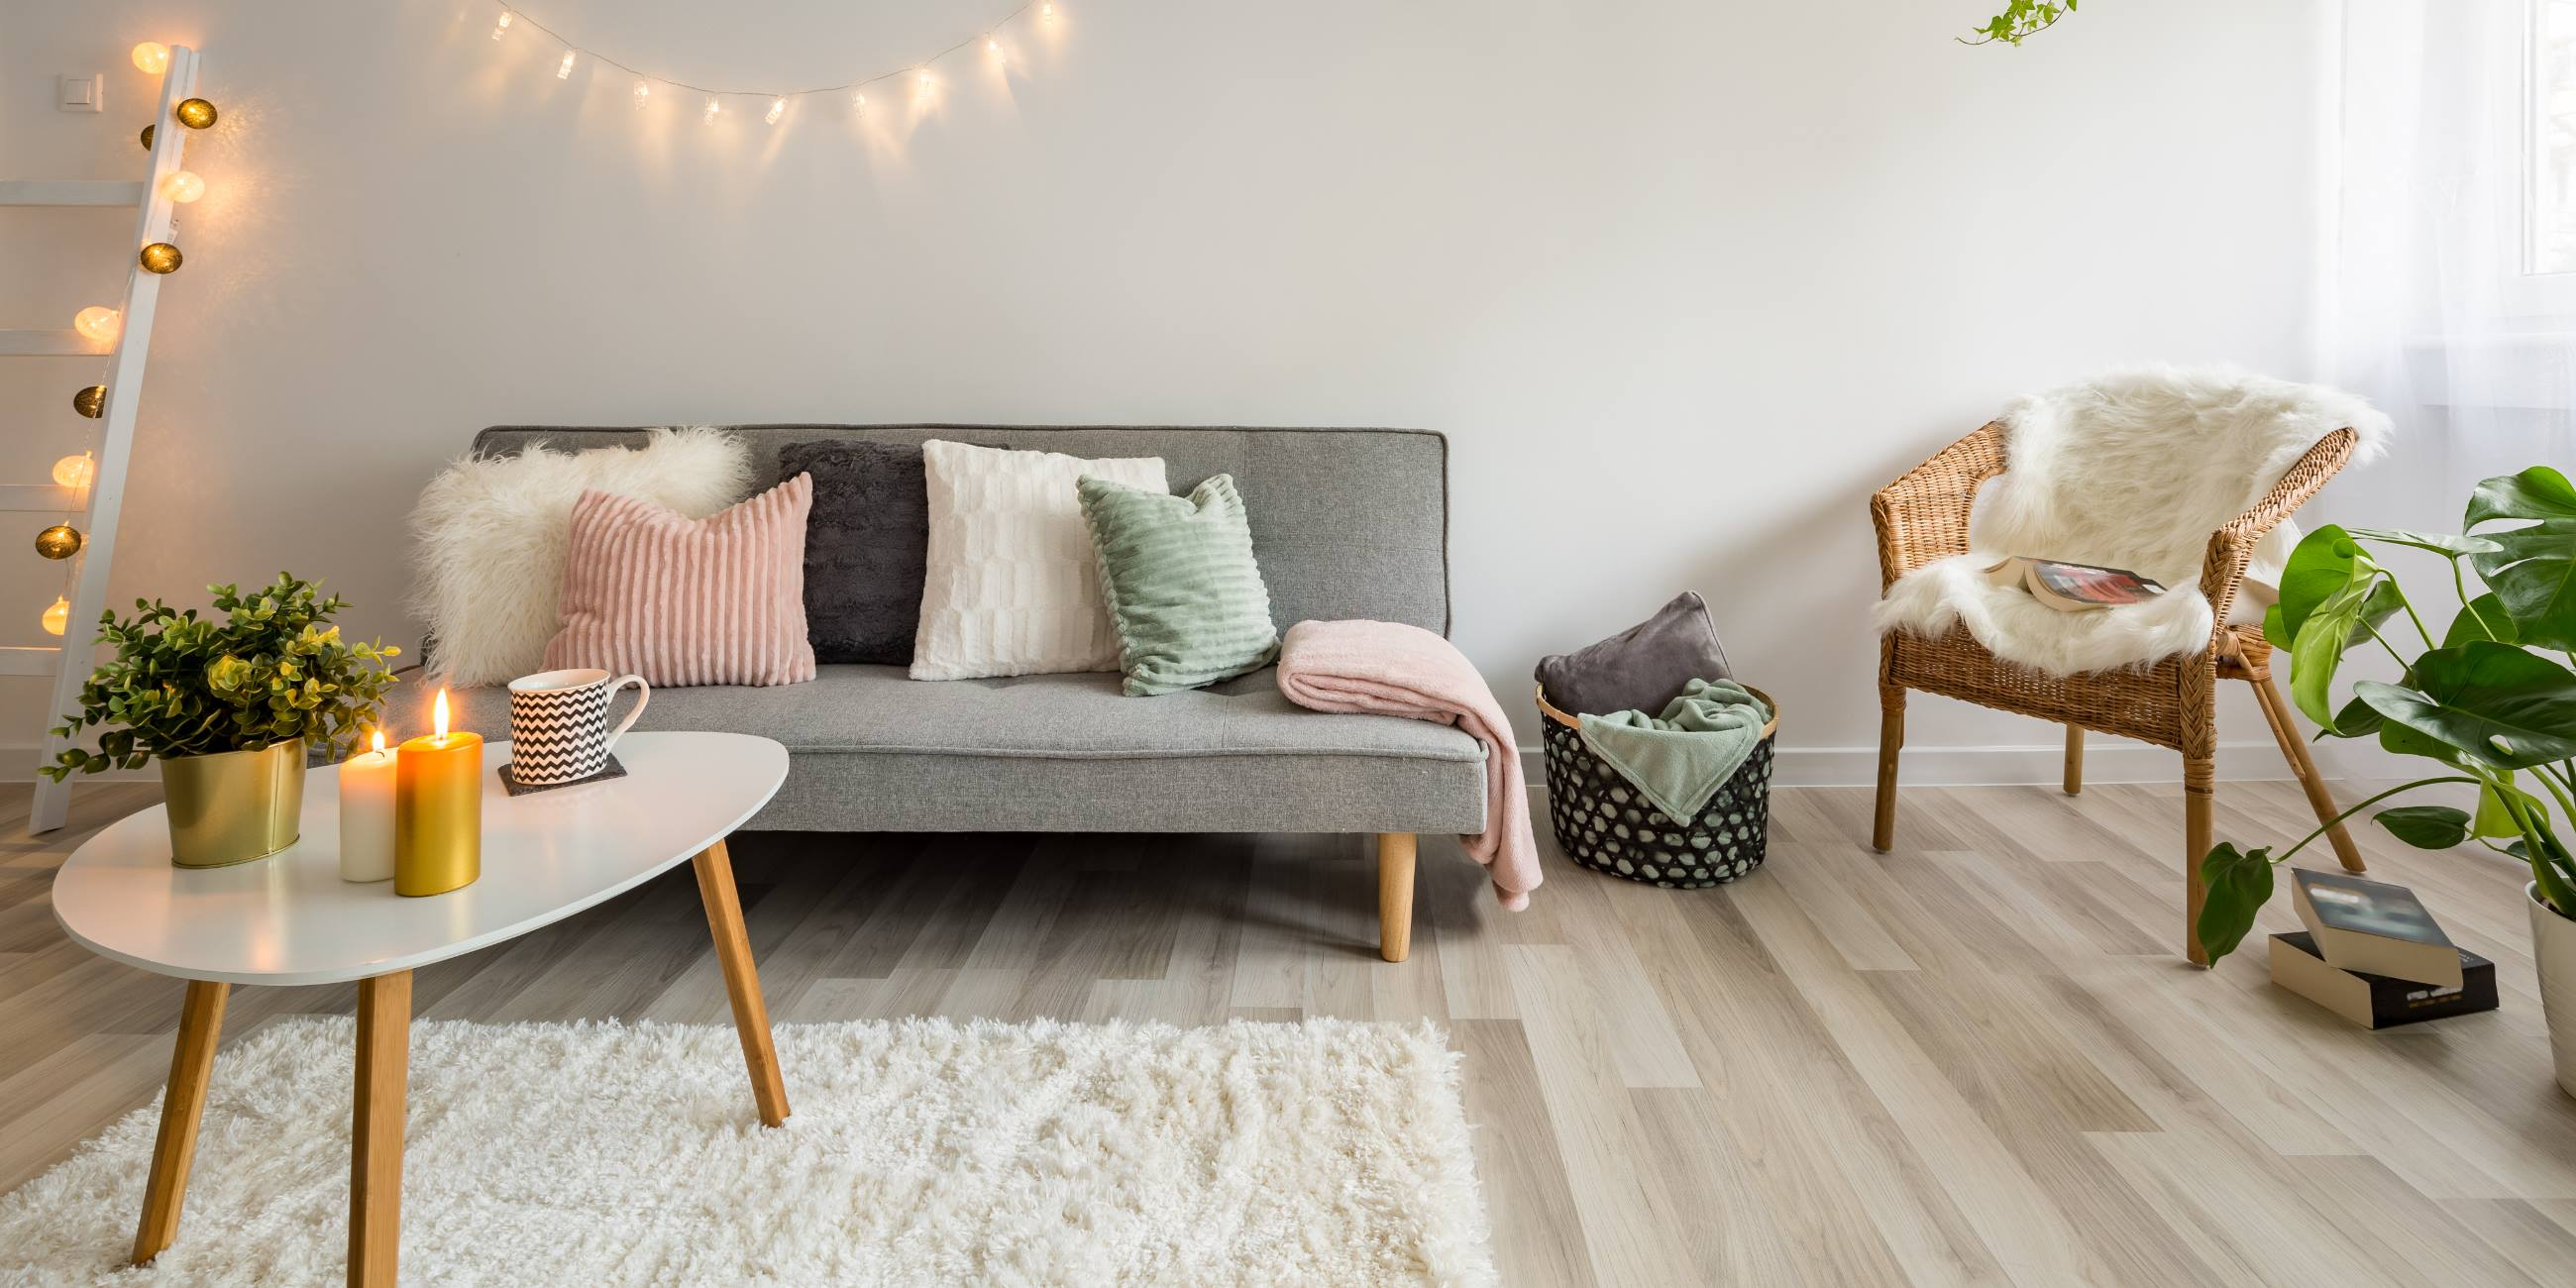 Danish-room laid-out-in-perfect-order-hygge